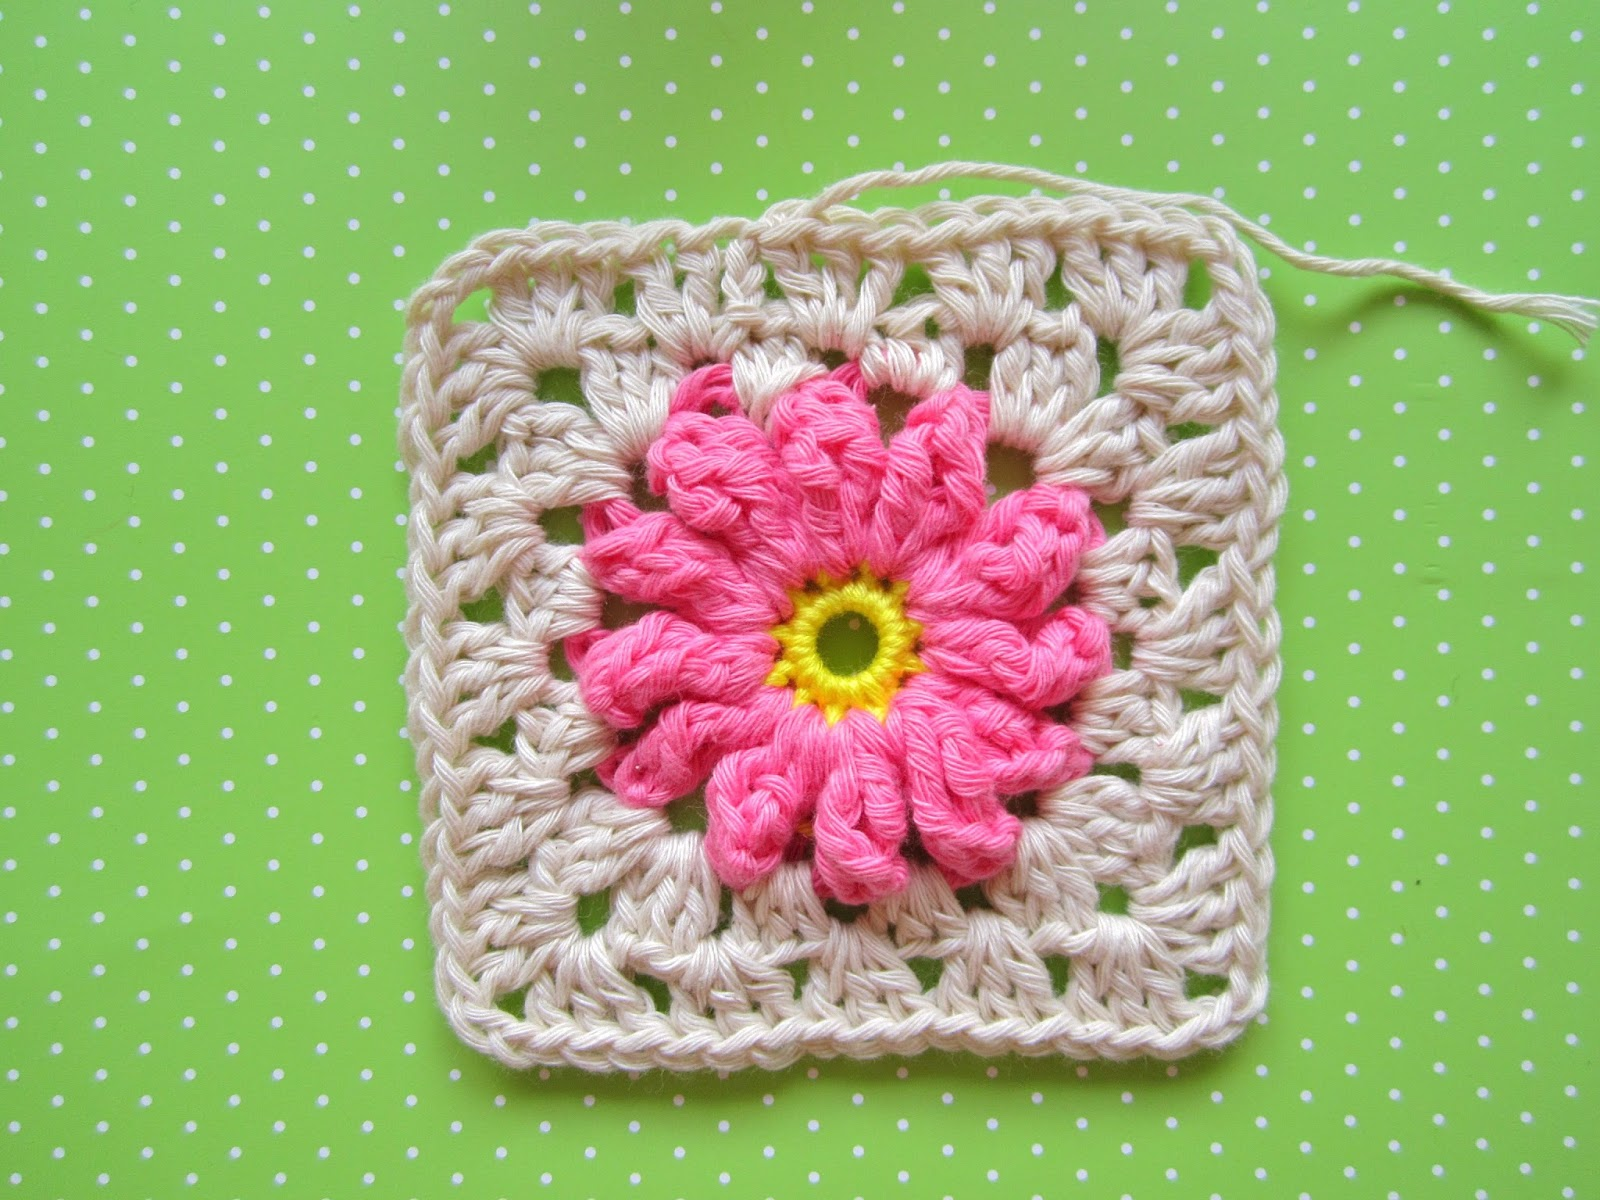 Color \'n Cream Crochet and Dream: Flower Square Tutorial III